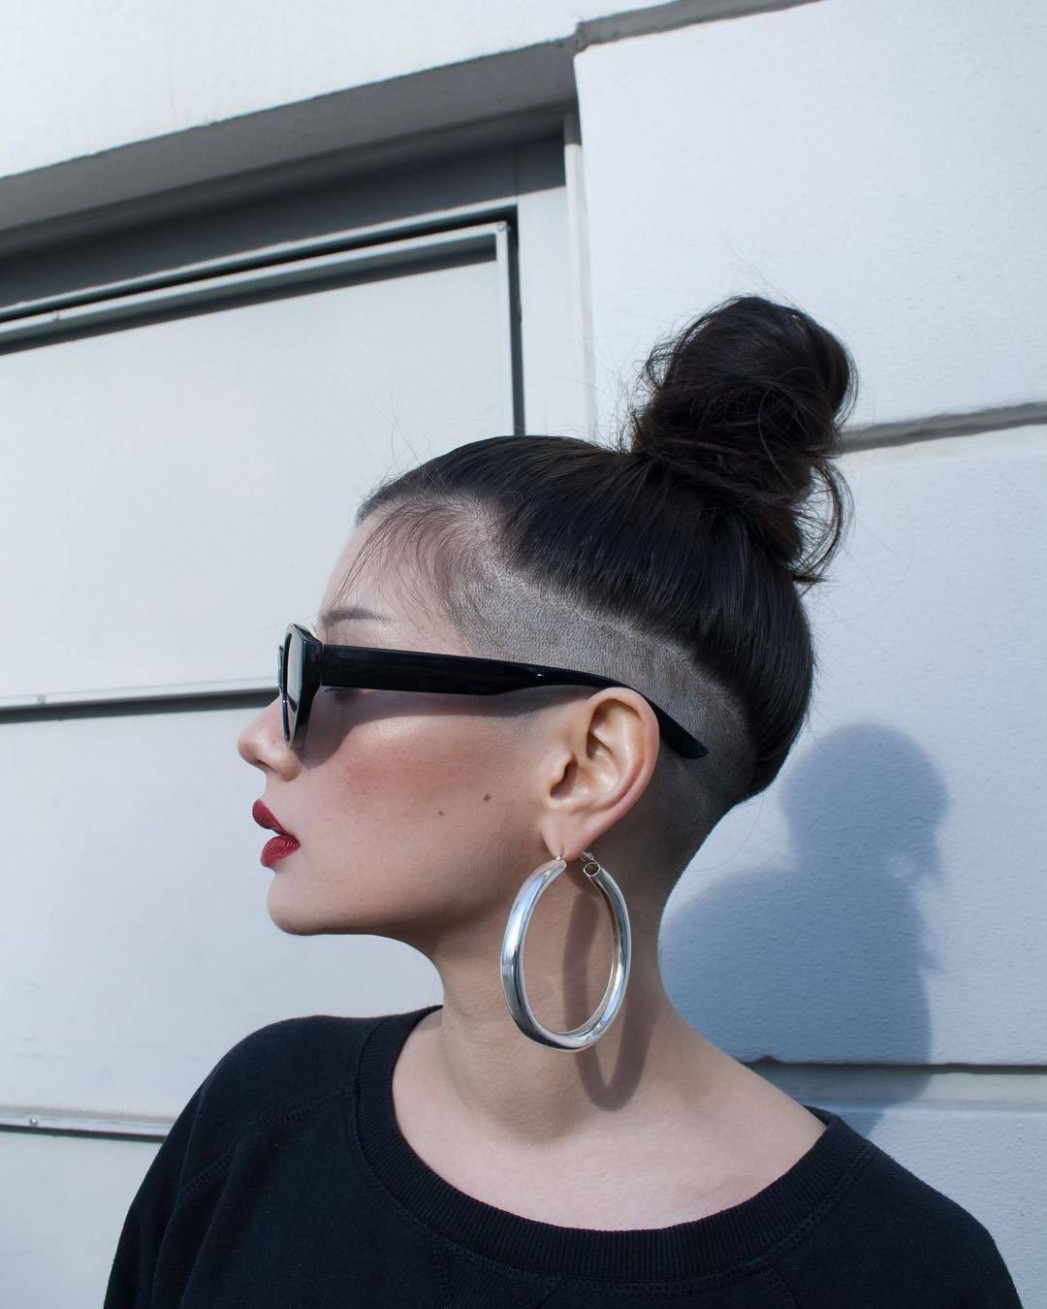 8 Bold Shaved Hairstyles For Women Shaved Hair Designs Shaved Sides Long Top Girl